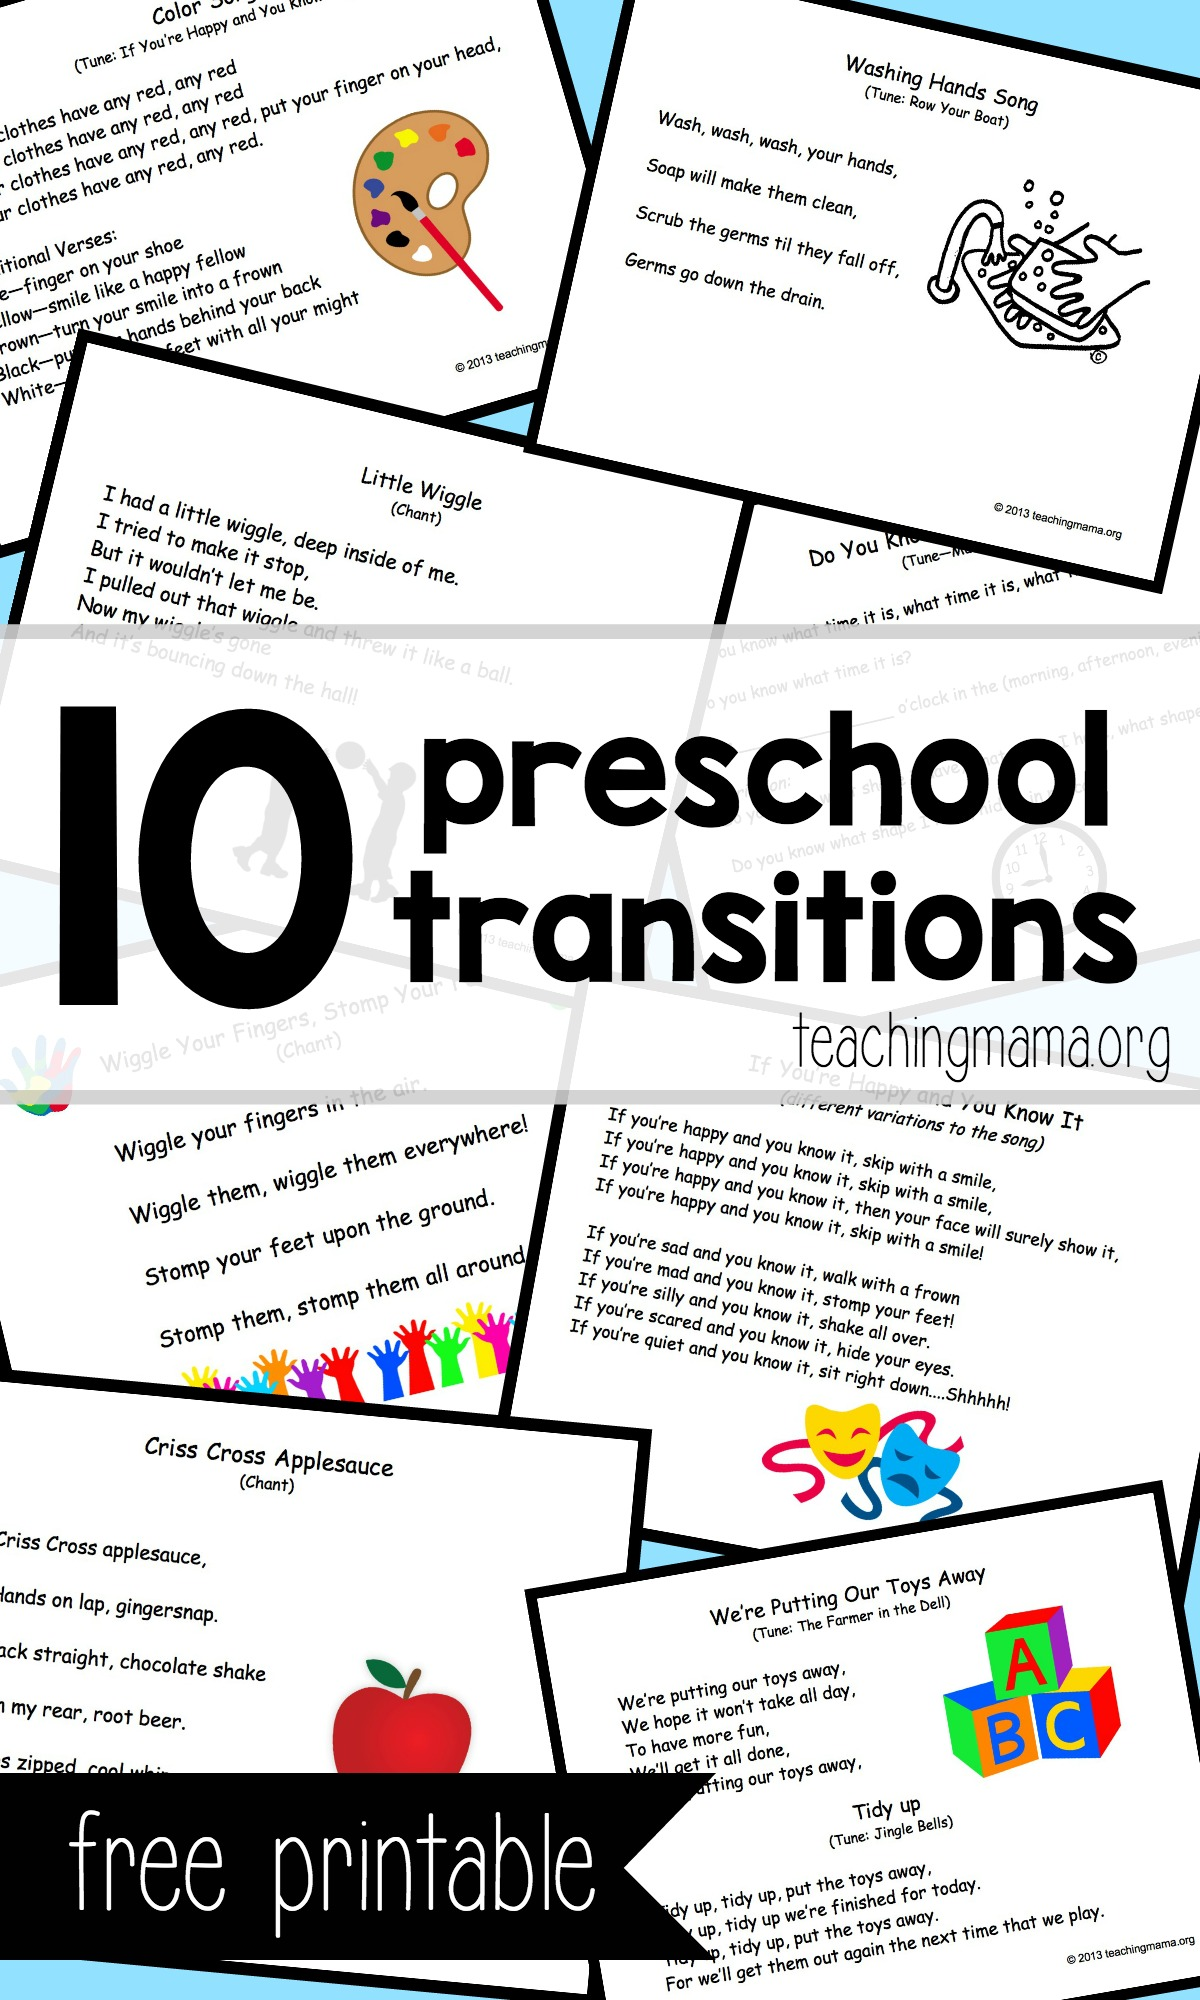 10 Preschool Transitions- Songs and Chants to Help Your Day Run